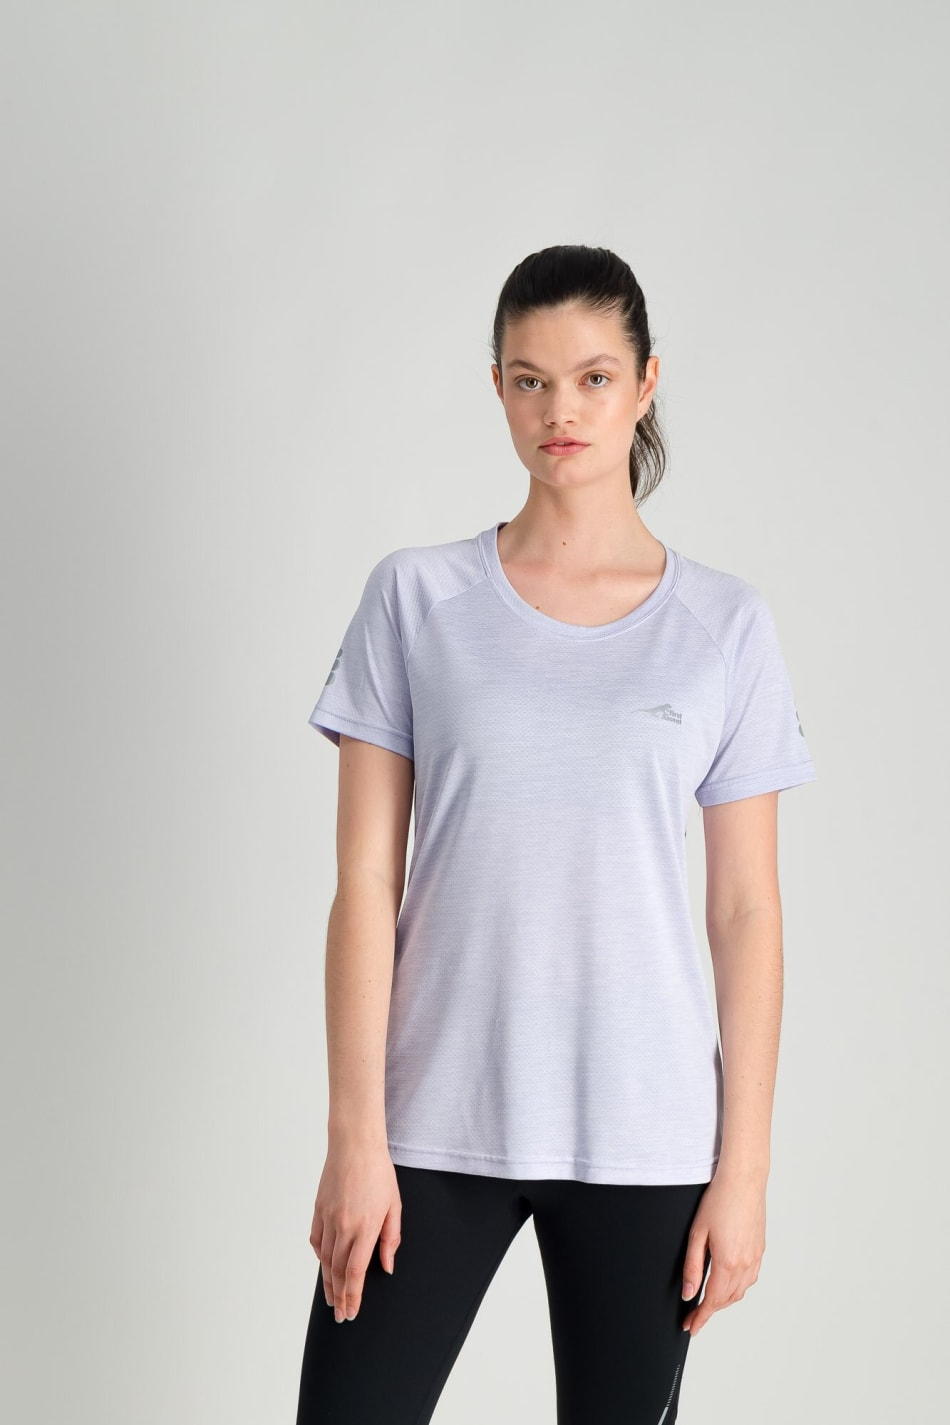 First Ascent Women's Corefit Run Tee, product, variation 1